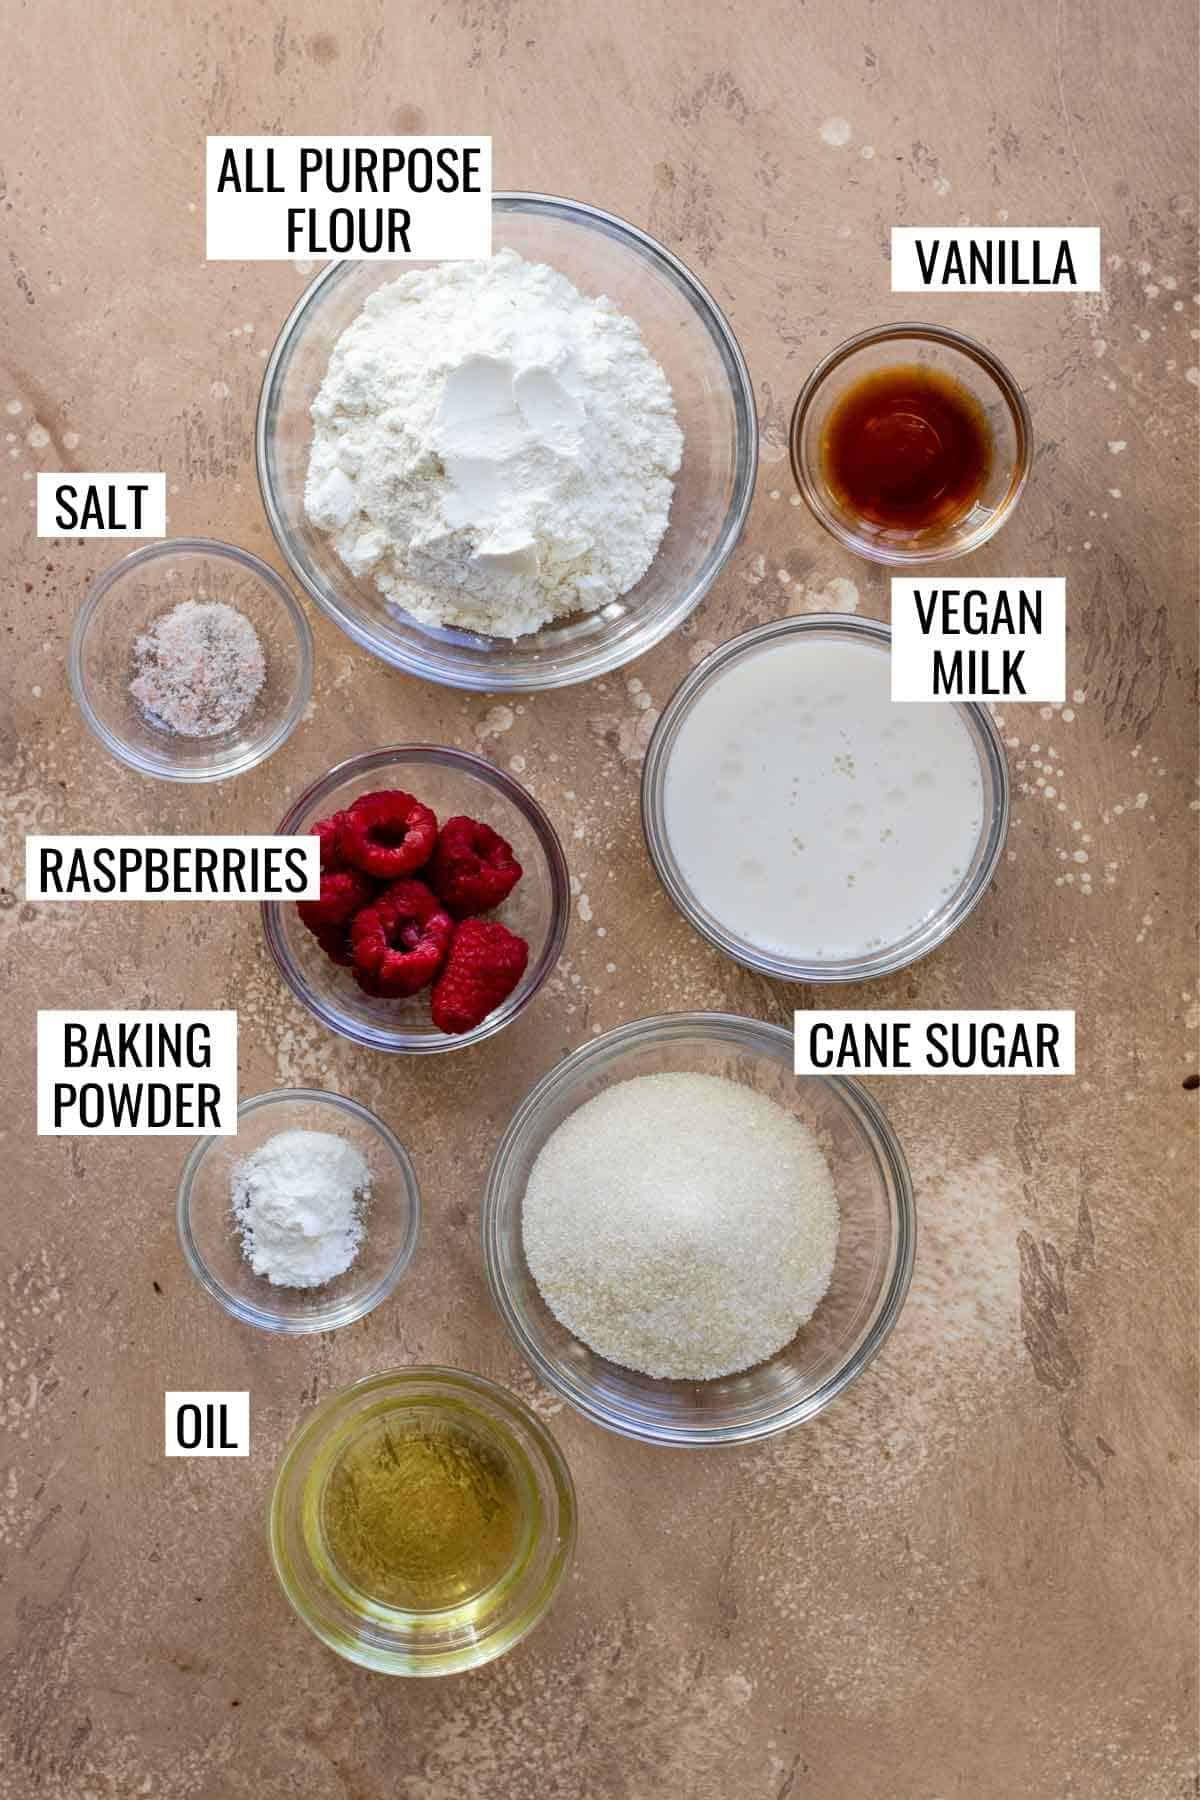 Cake ingredients measured and labeled in individual bowls.